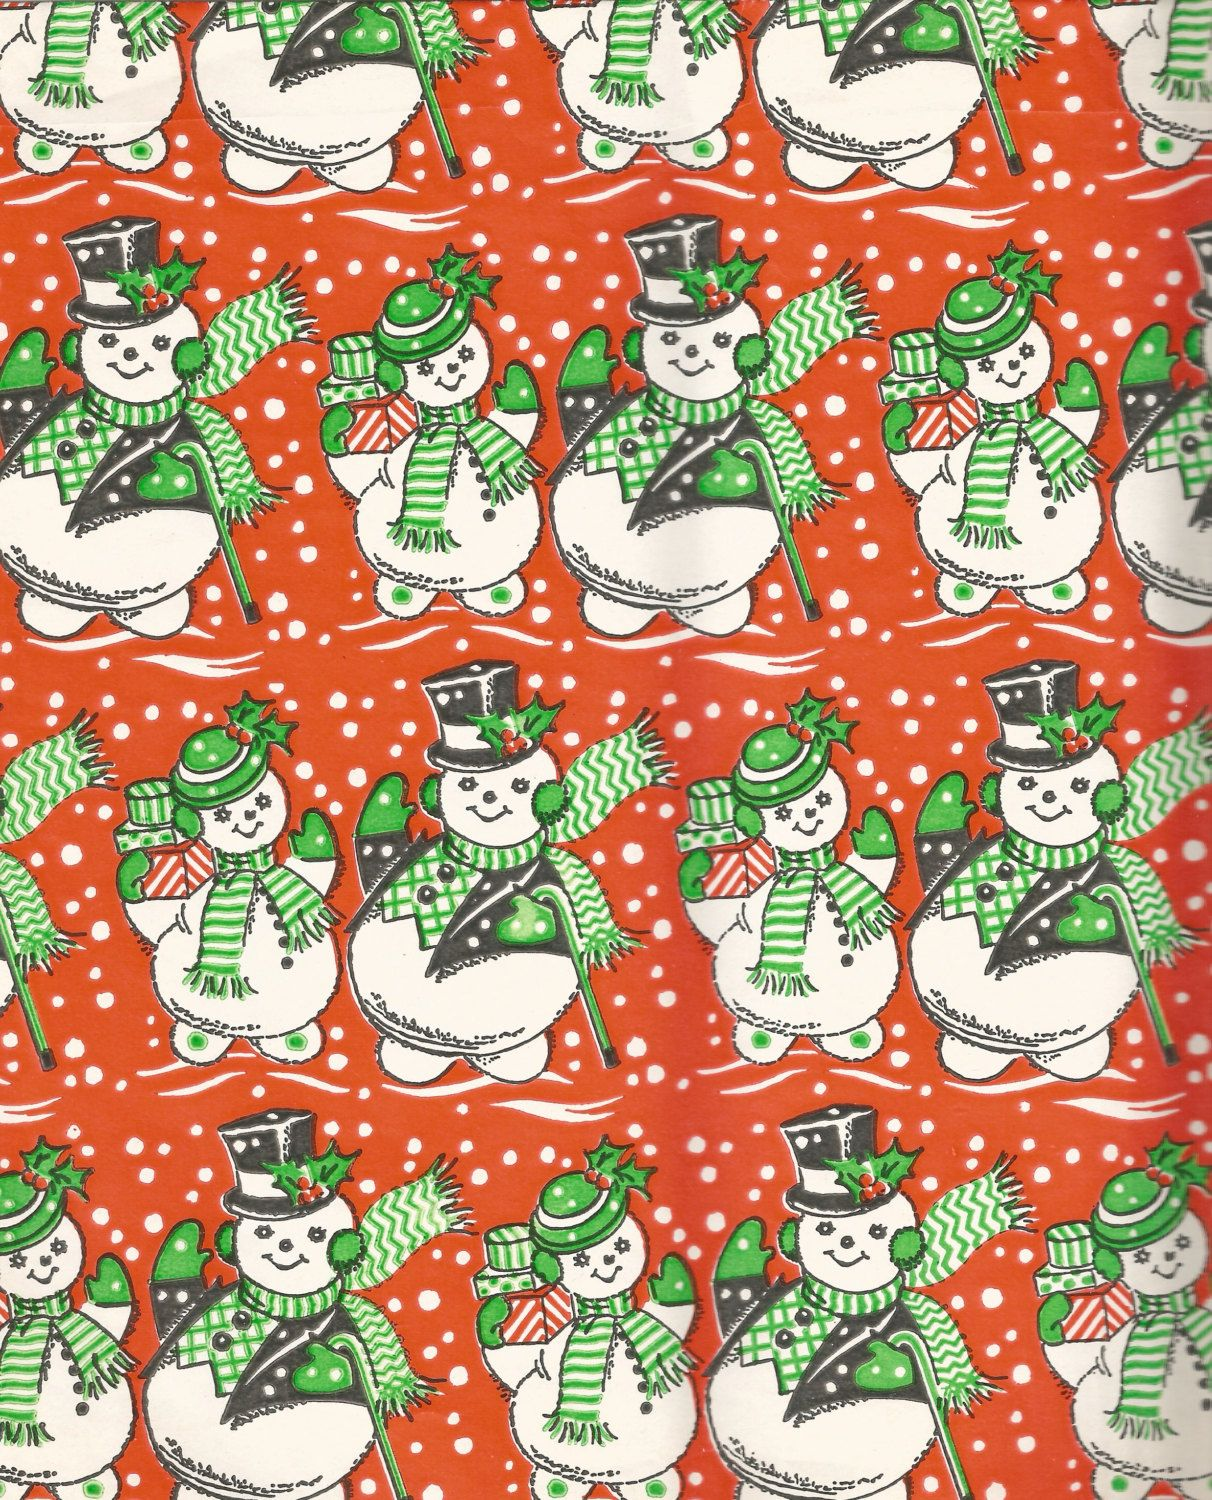 vintage christmas snowman wrapping paper digital download printable